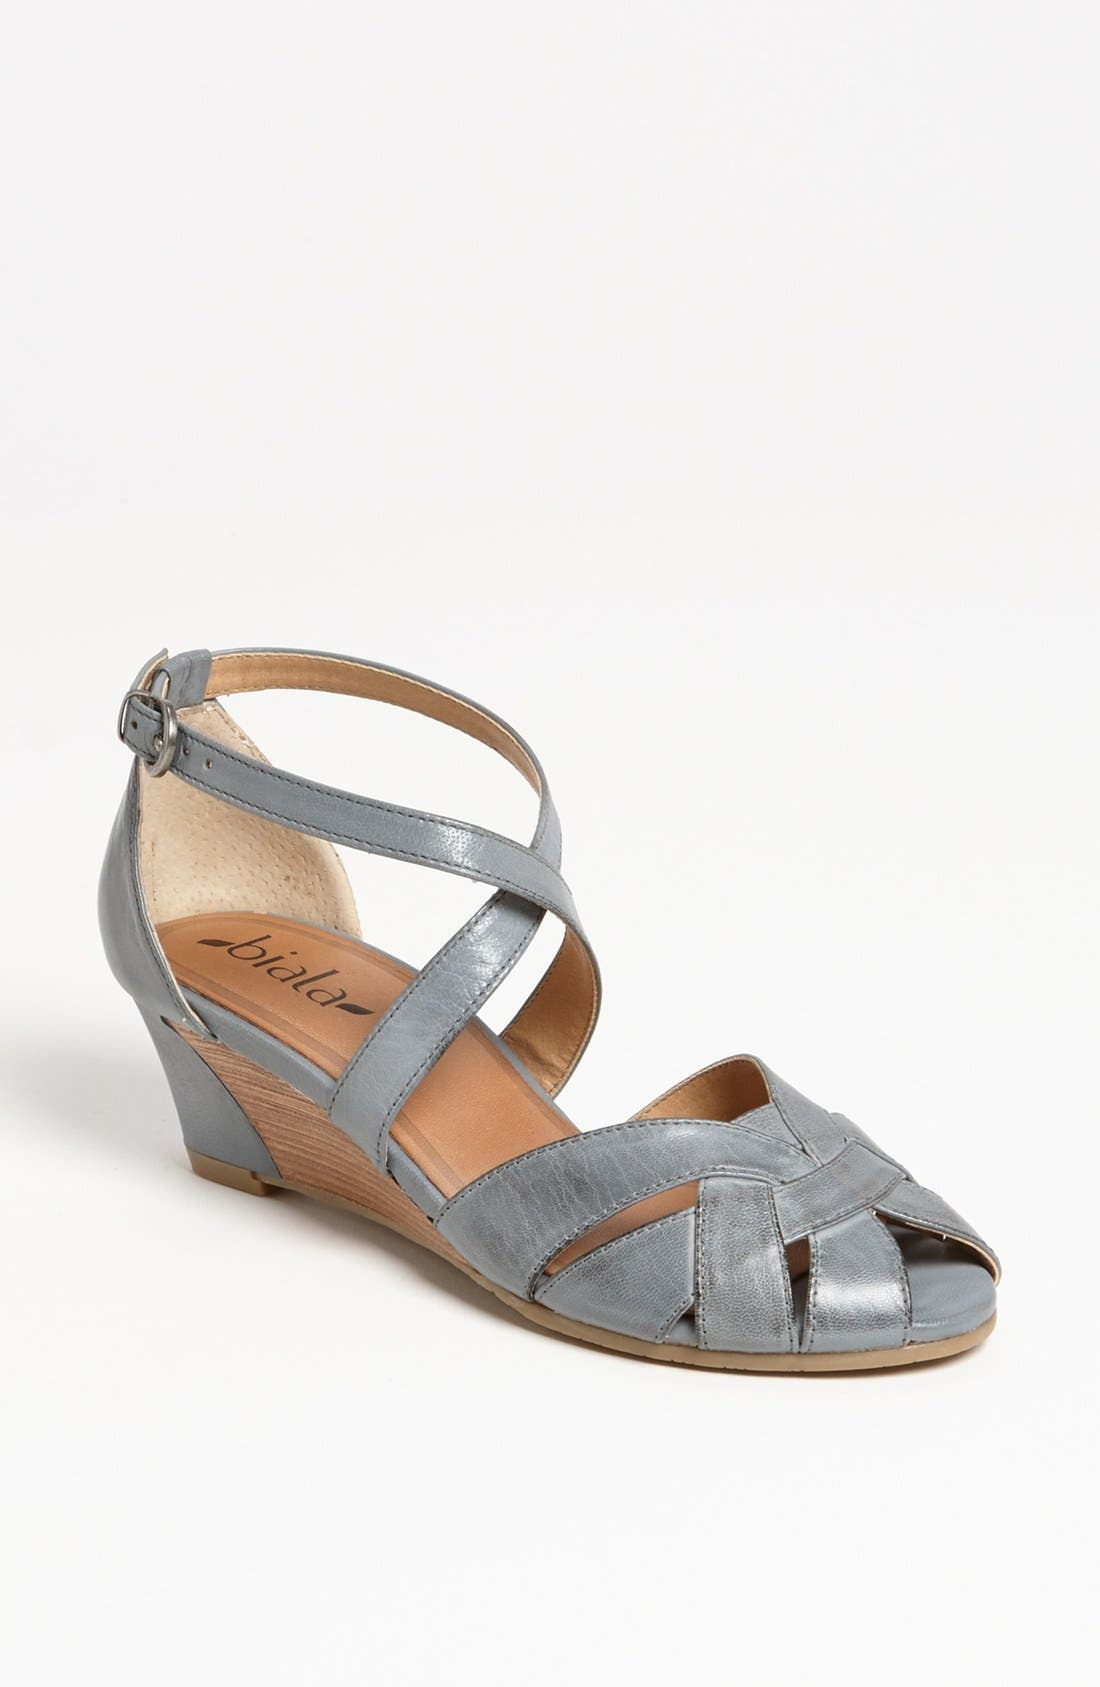 Main Image - Biala 'Julie' Wedge Sandal